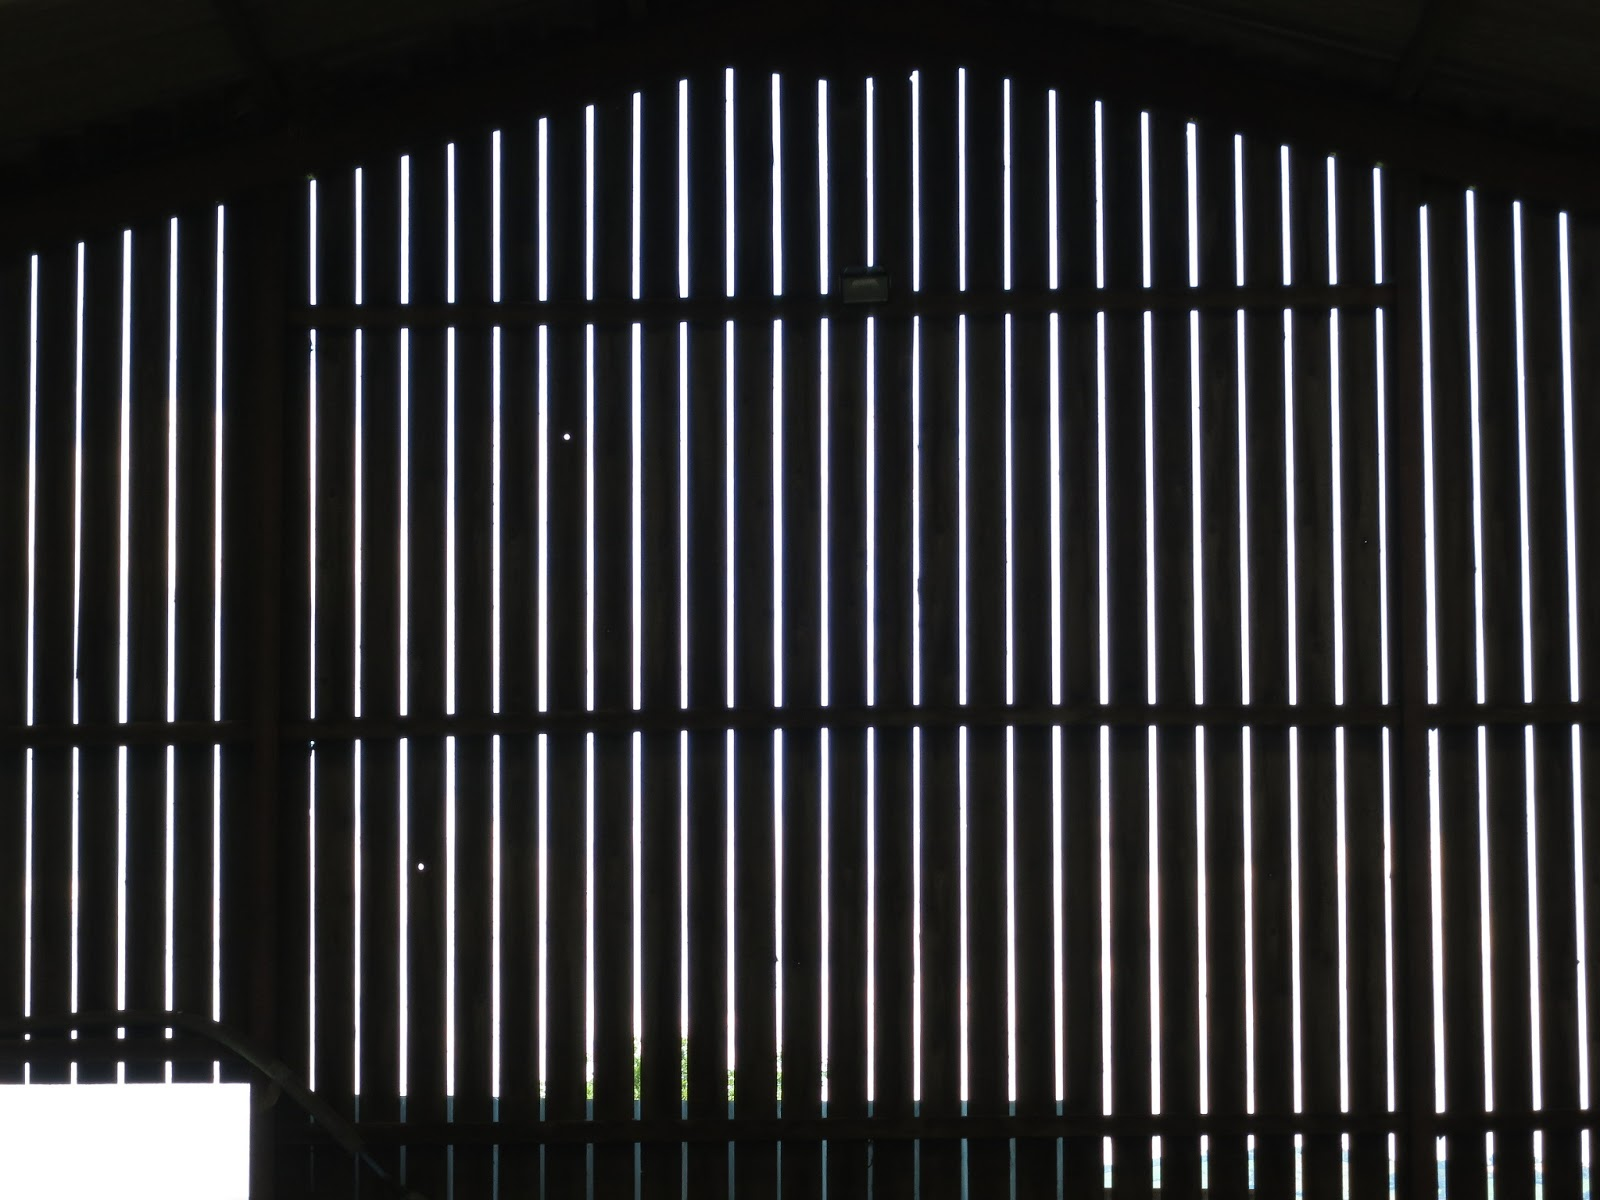 Light between bars of barn wall